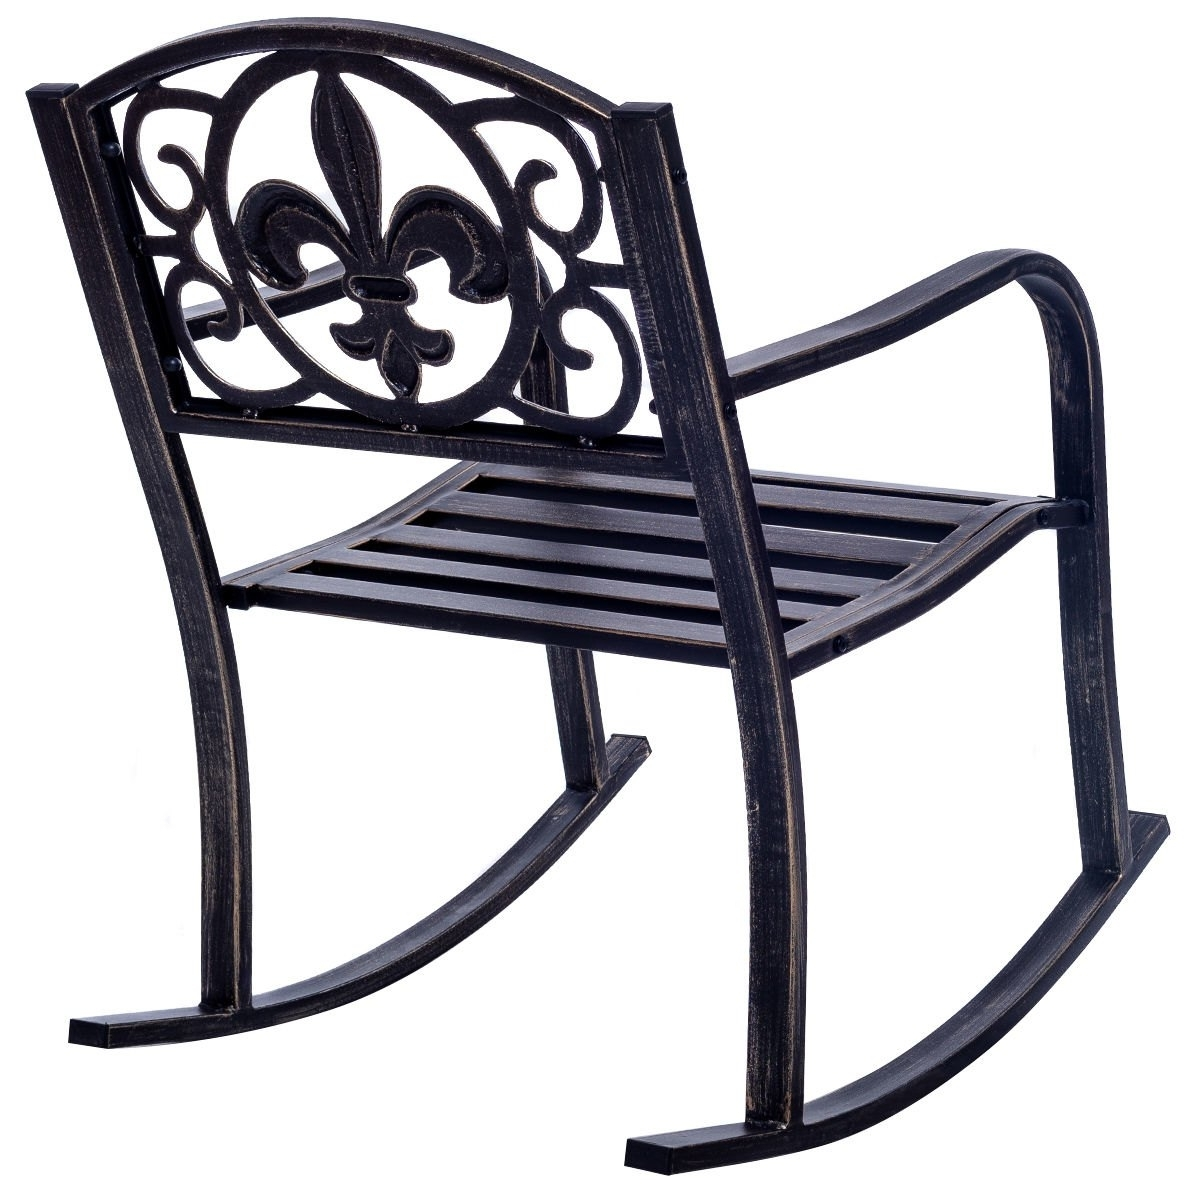 Outdoor Patio Metal Rocking Chairs Intended For 2018 Costway: Costway Patio Metal Rocking Chair Porch Seat Deck Outdoor (View 19 of 20)